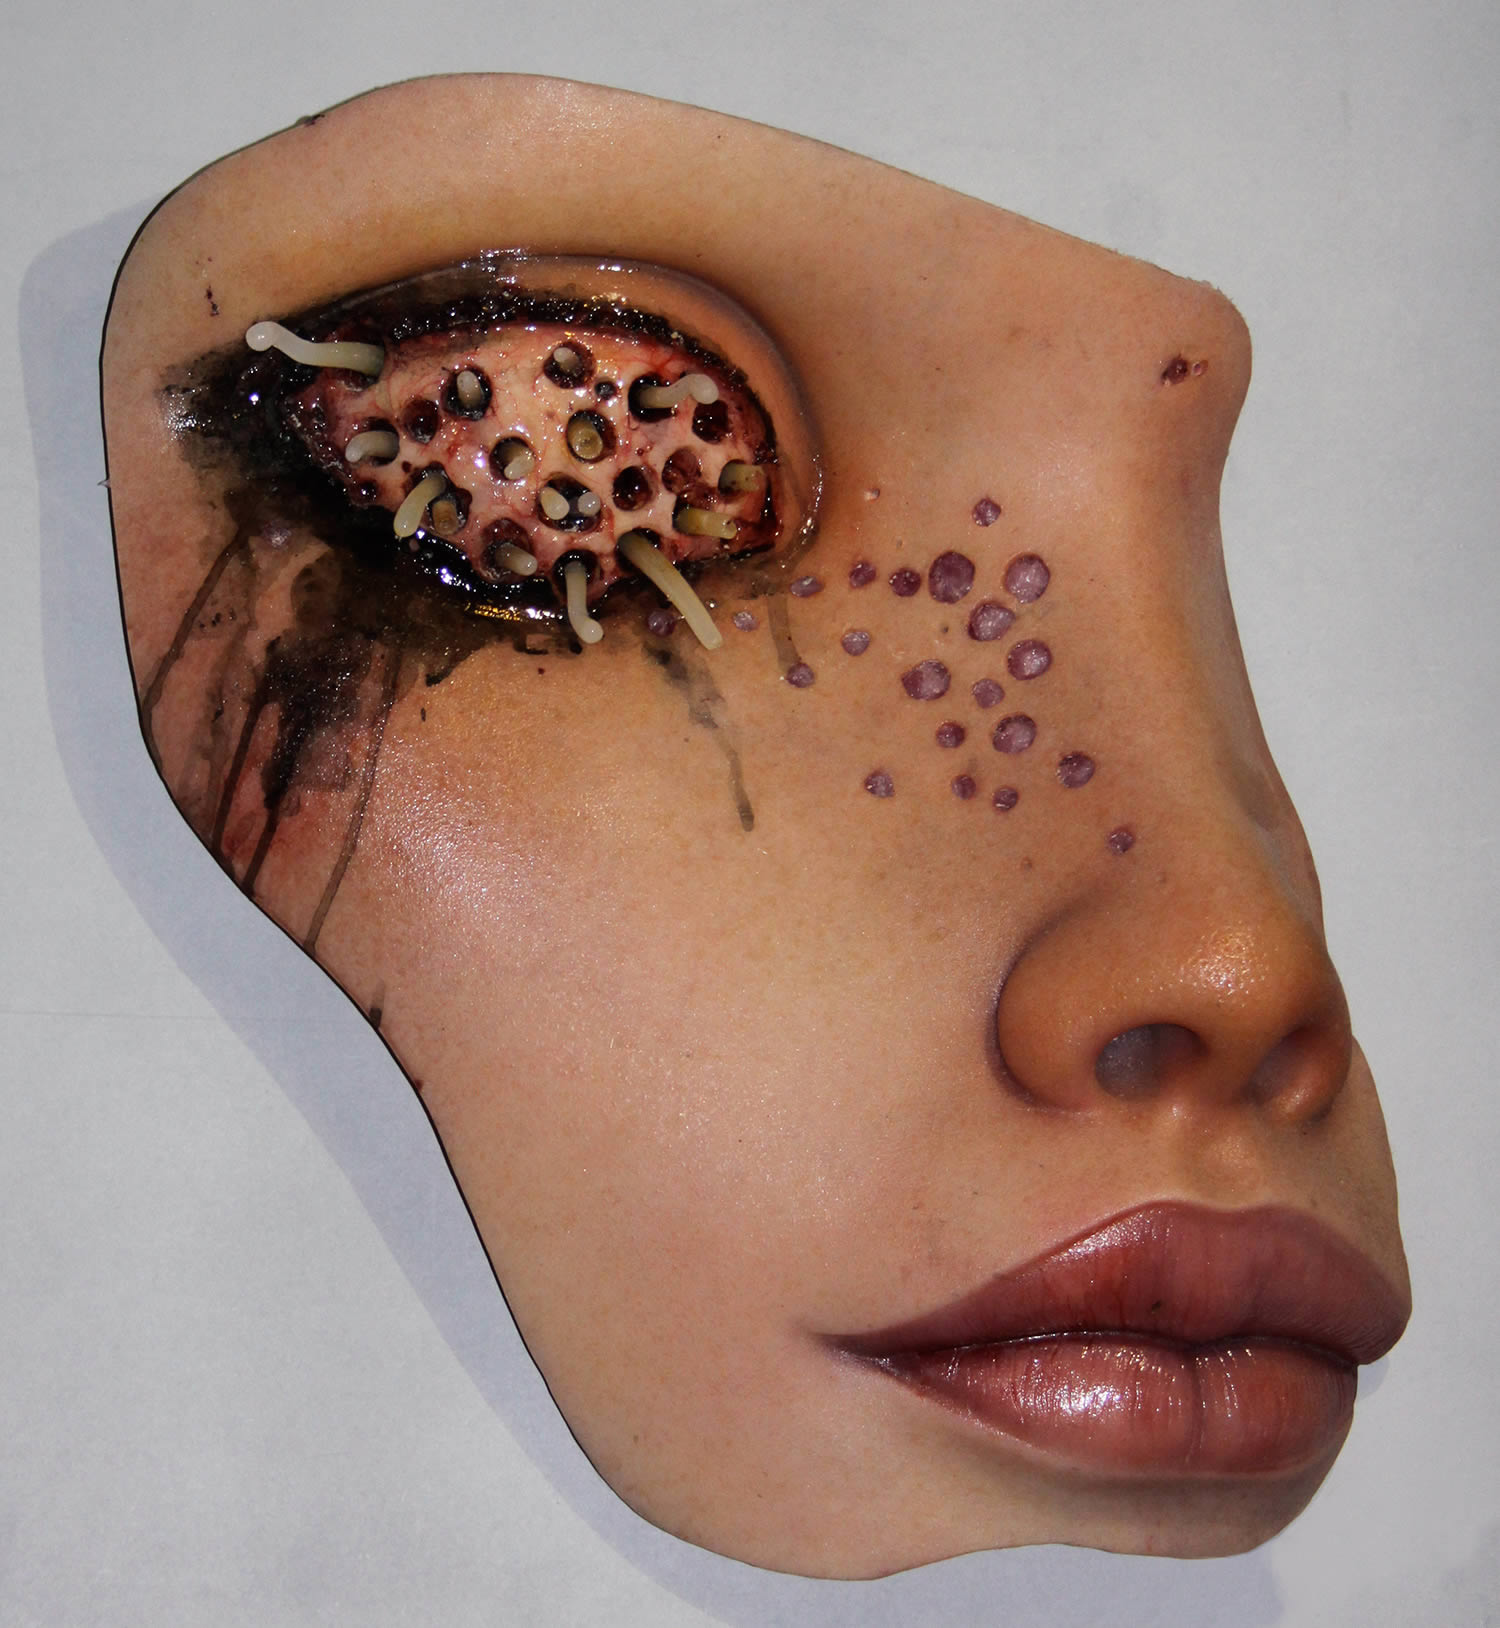 Colin Christian, Alive - sculpture of face with eye filled with worms